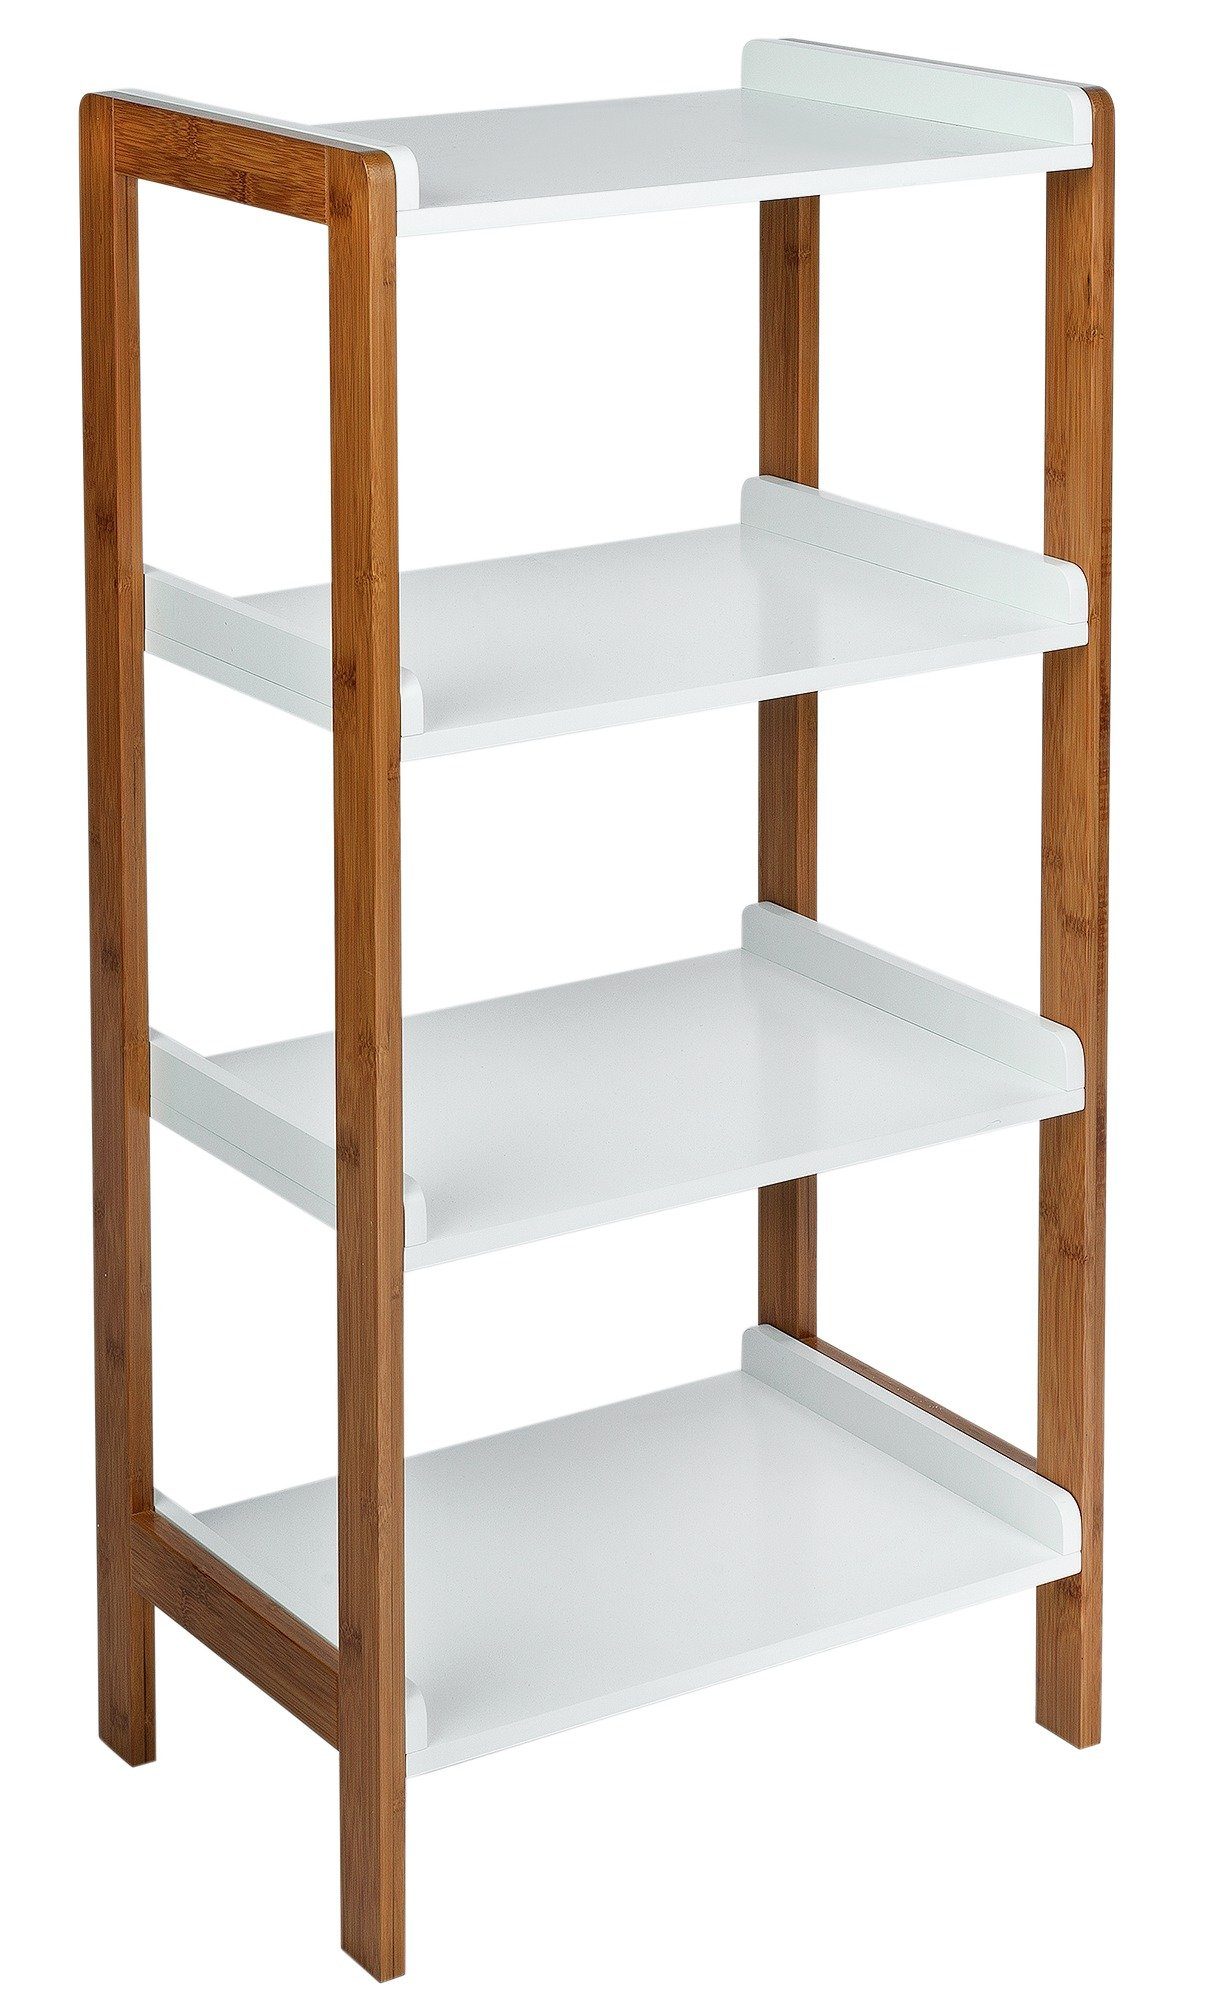 Image of Collection 4 Tier Bamboo Shelf Unit - Two Tone